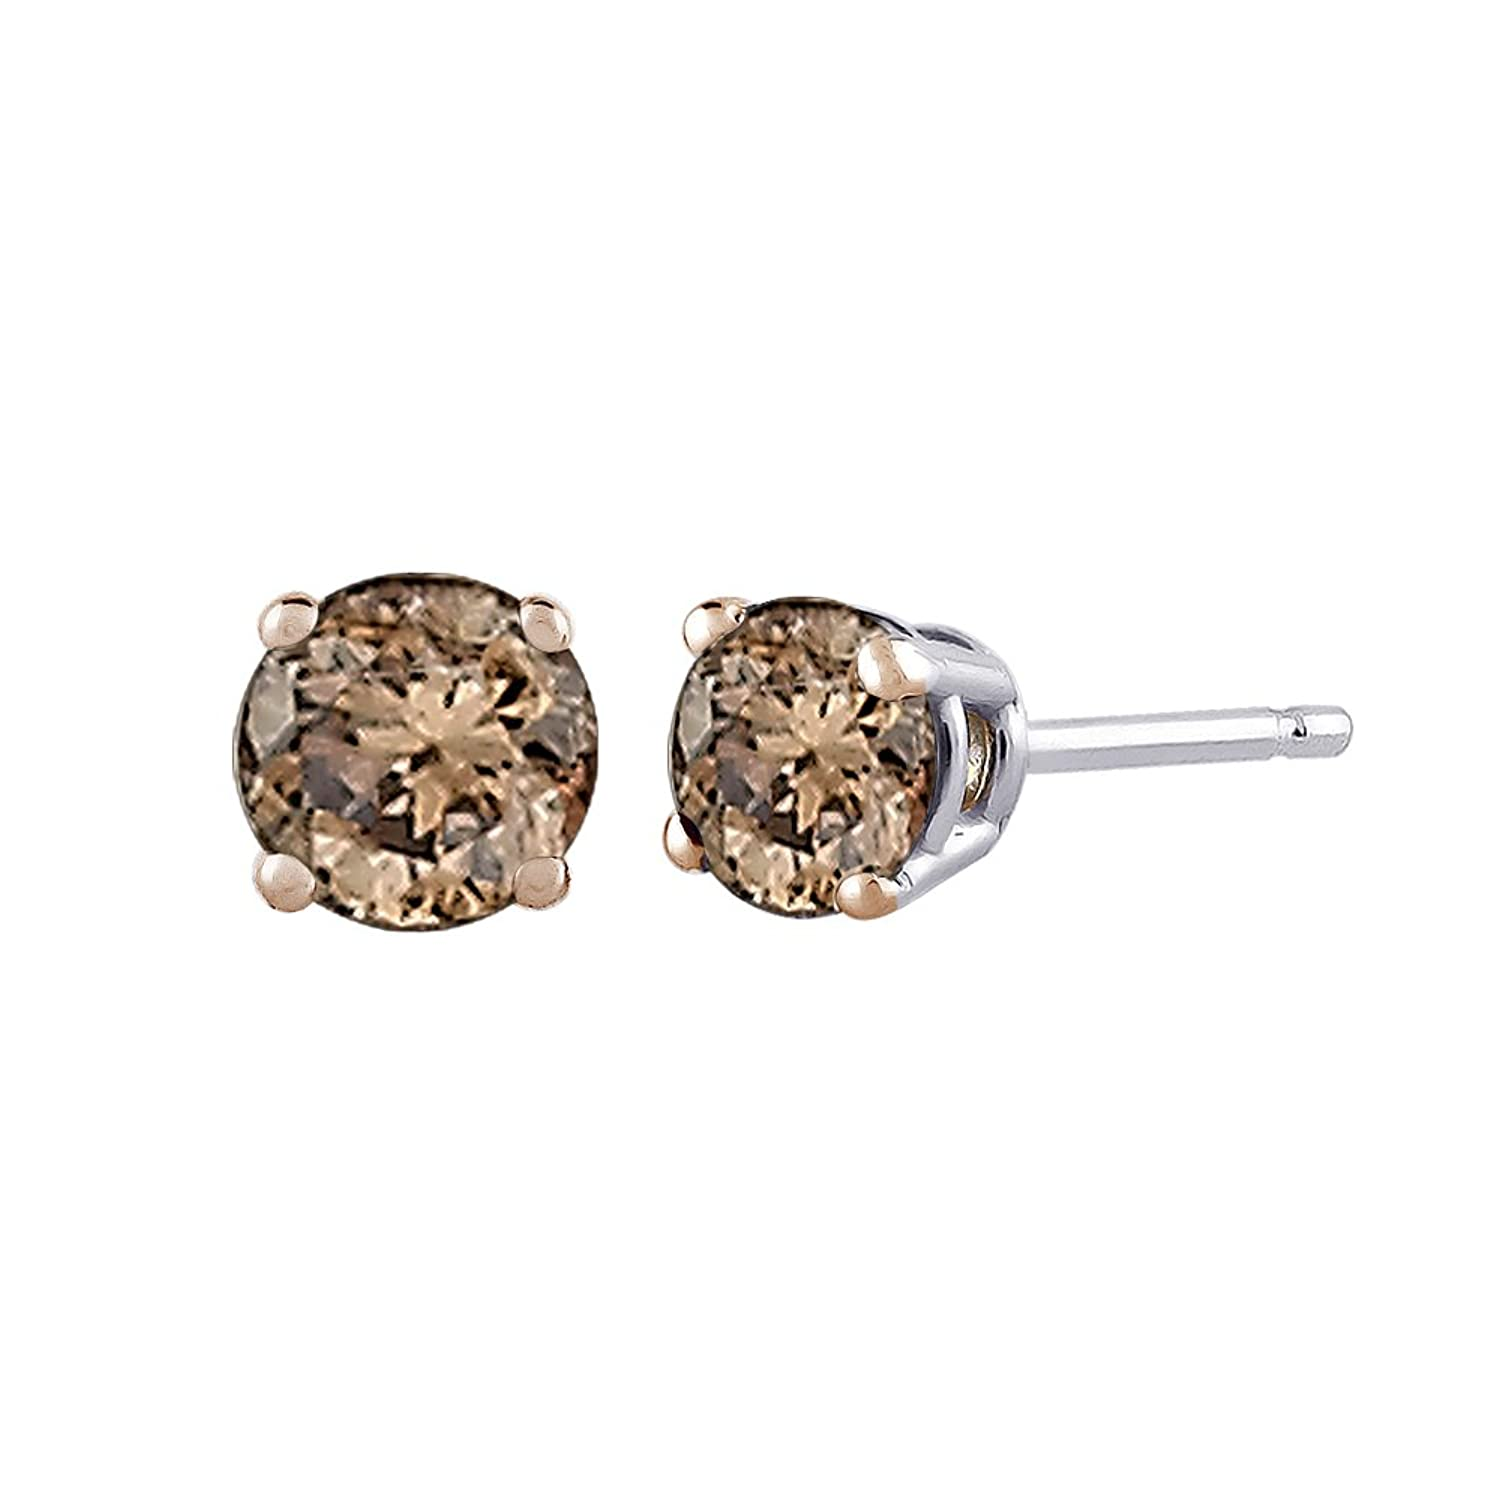 svcm home earrings diamond vian famous chocolate le earring stud